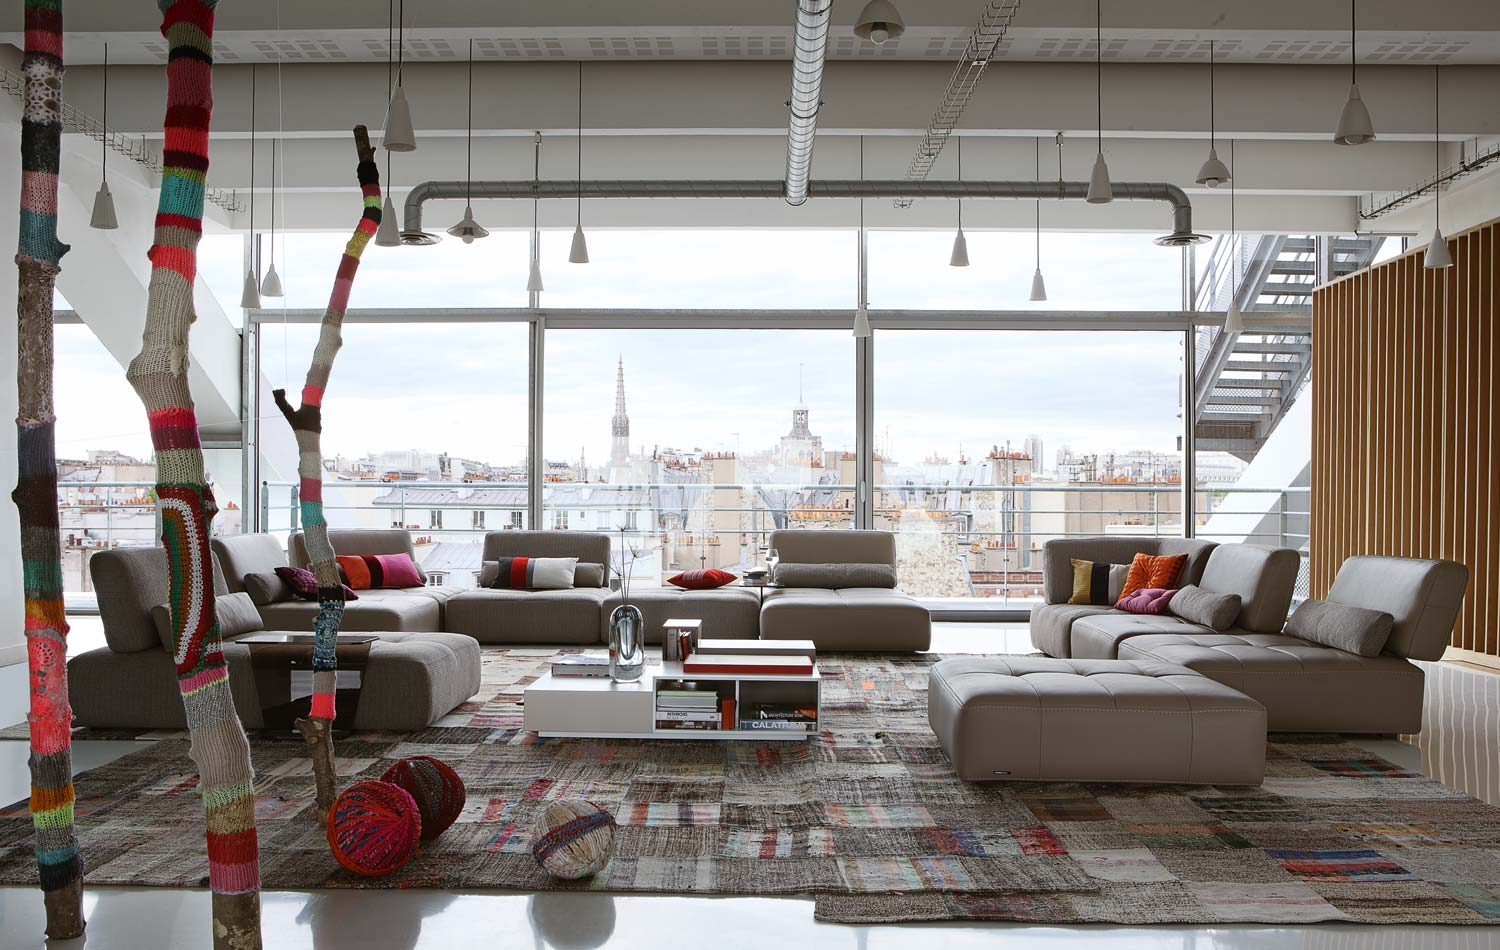 Room Inspiration: 120 Modern Sofas by Roche Bobois (Part 3/3)